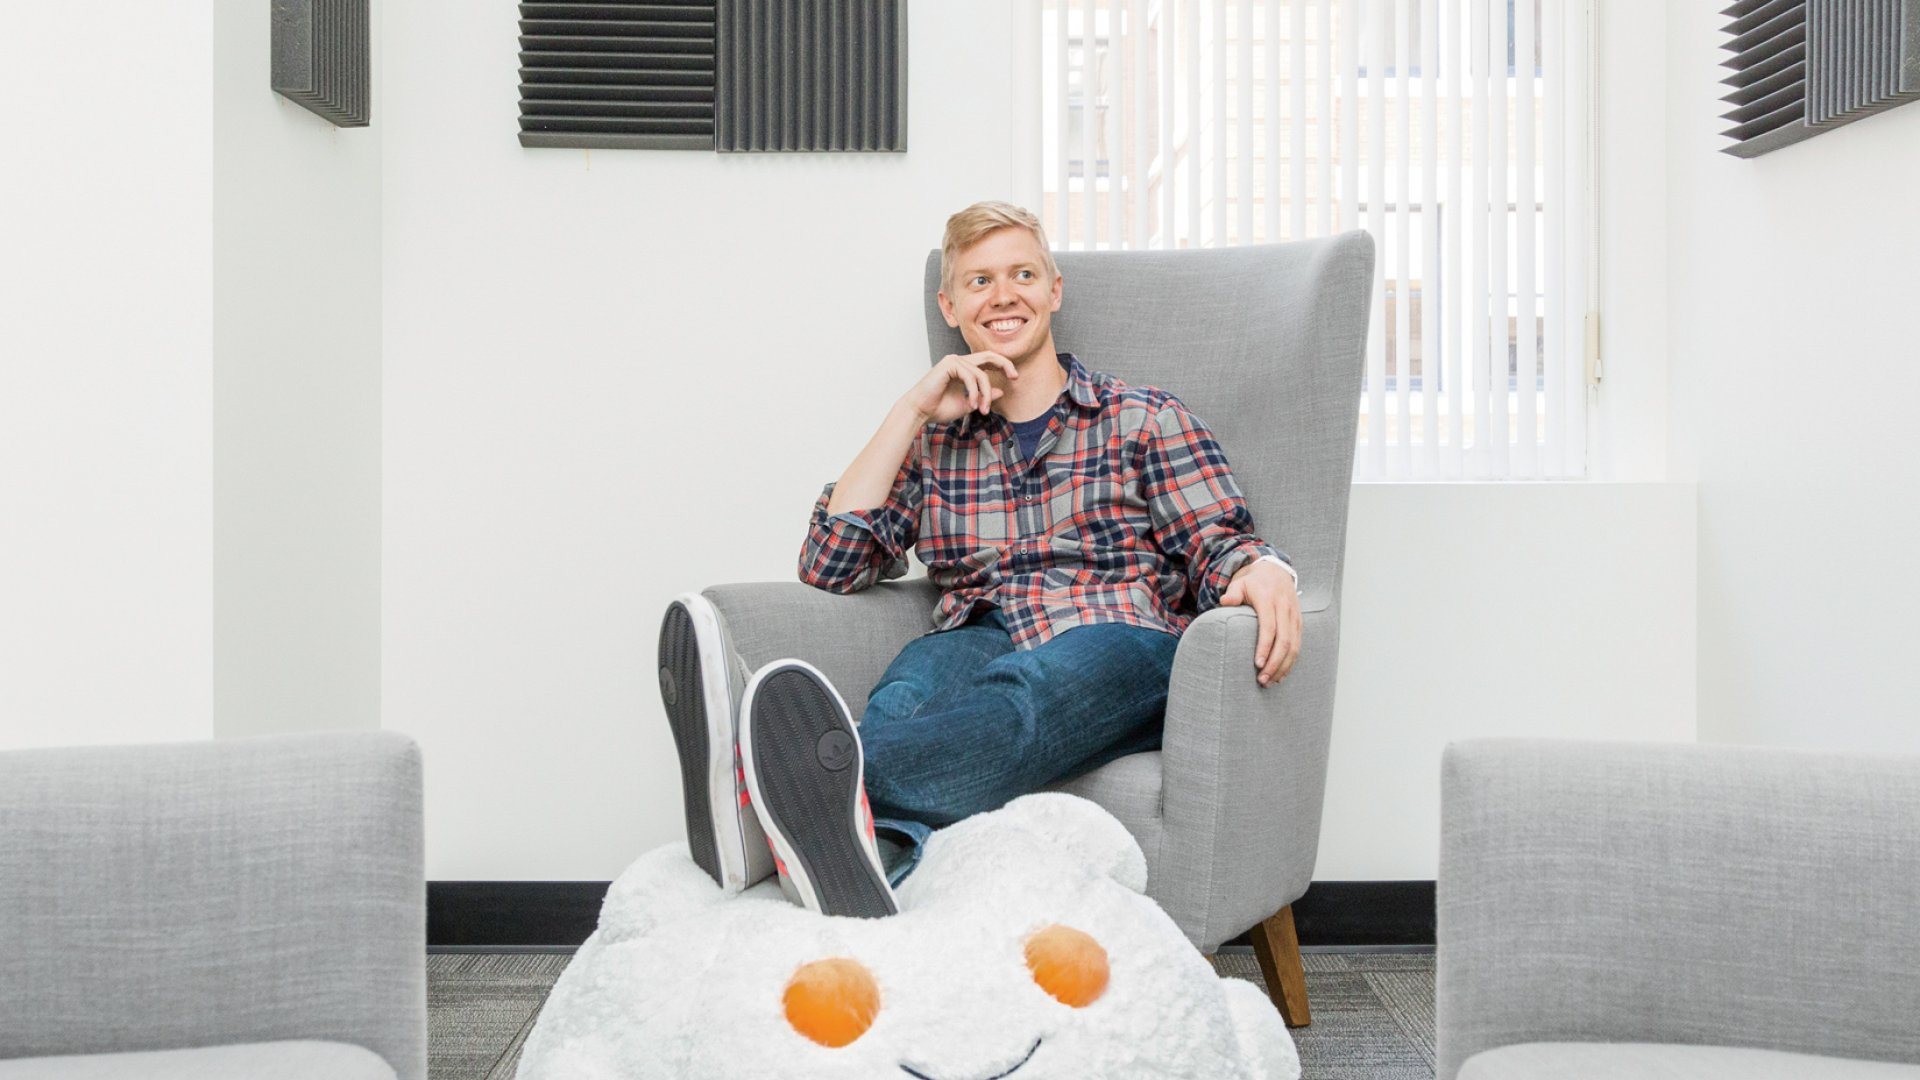 Co-founder and CEO of Reddit Steve Huffman.